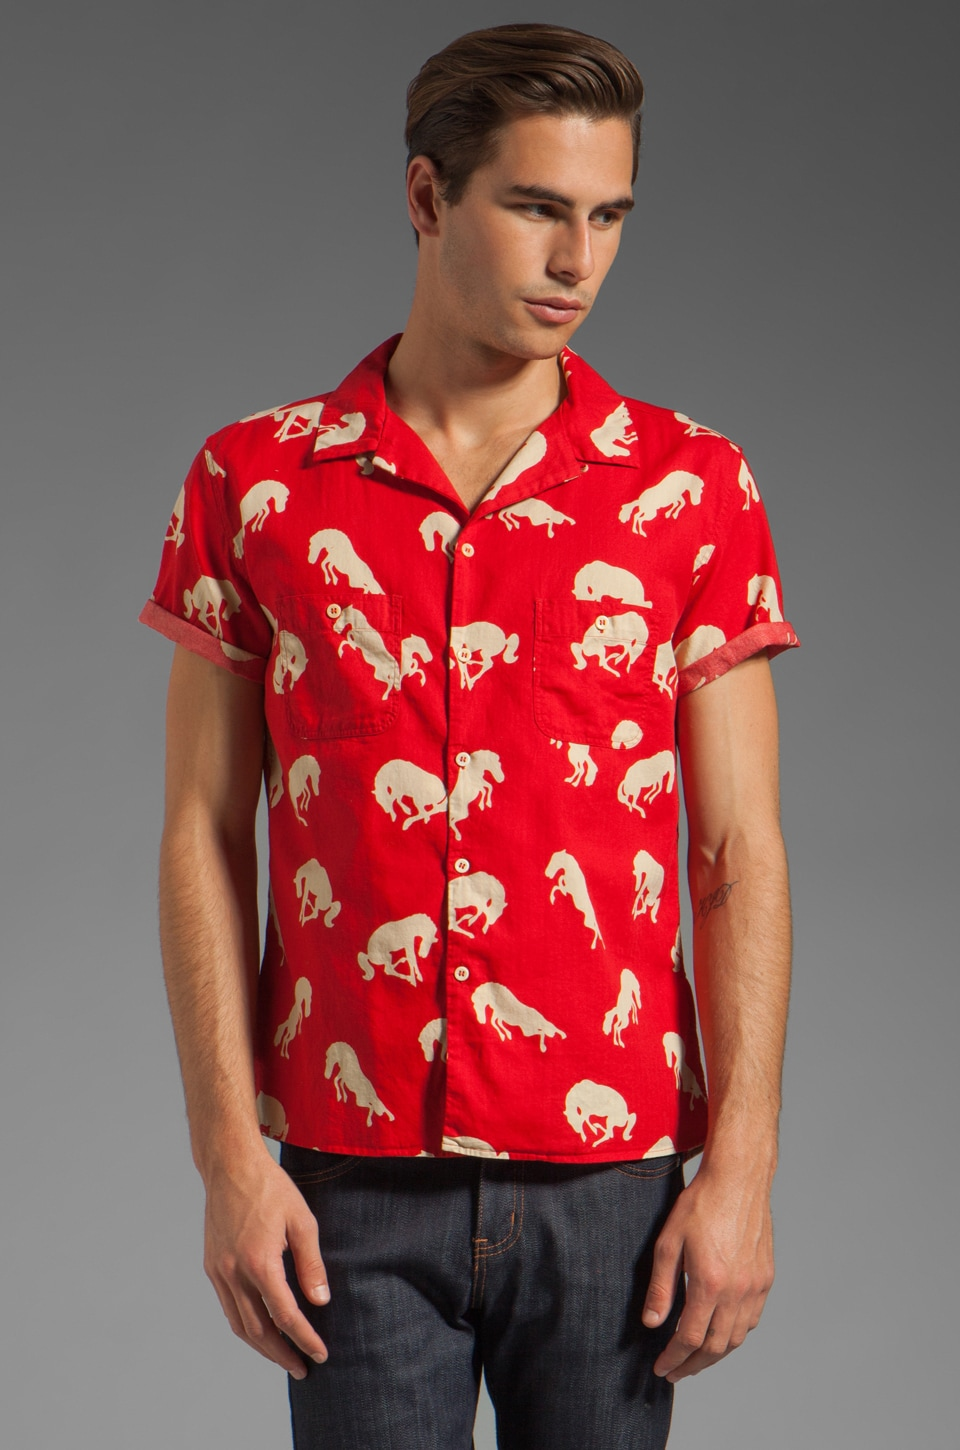 LEVI'S: Made & Crafted Short Sleeve Button Down Shirt in Red Horses